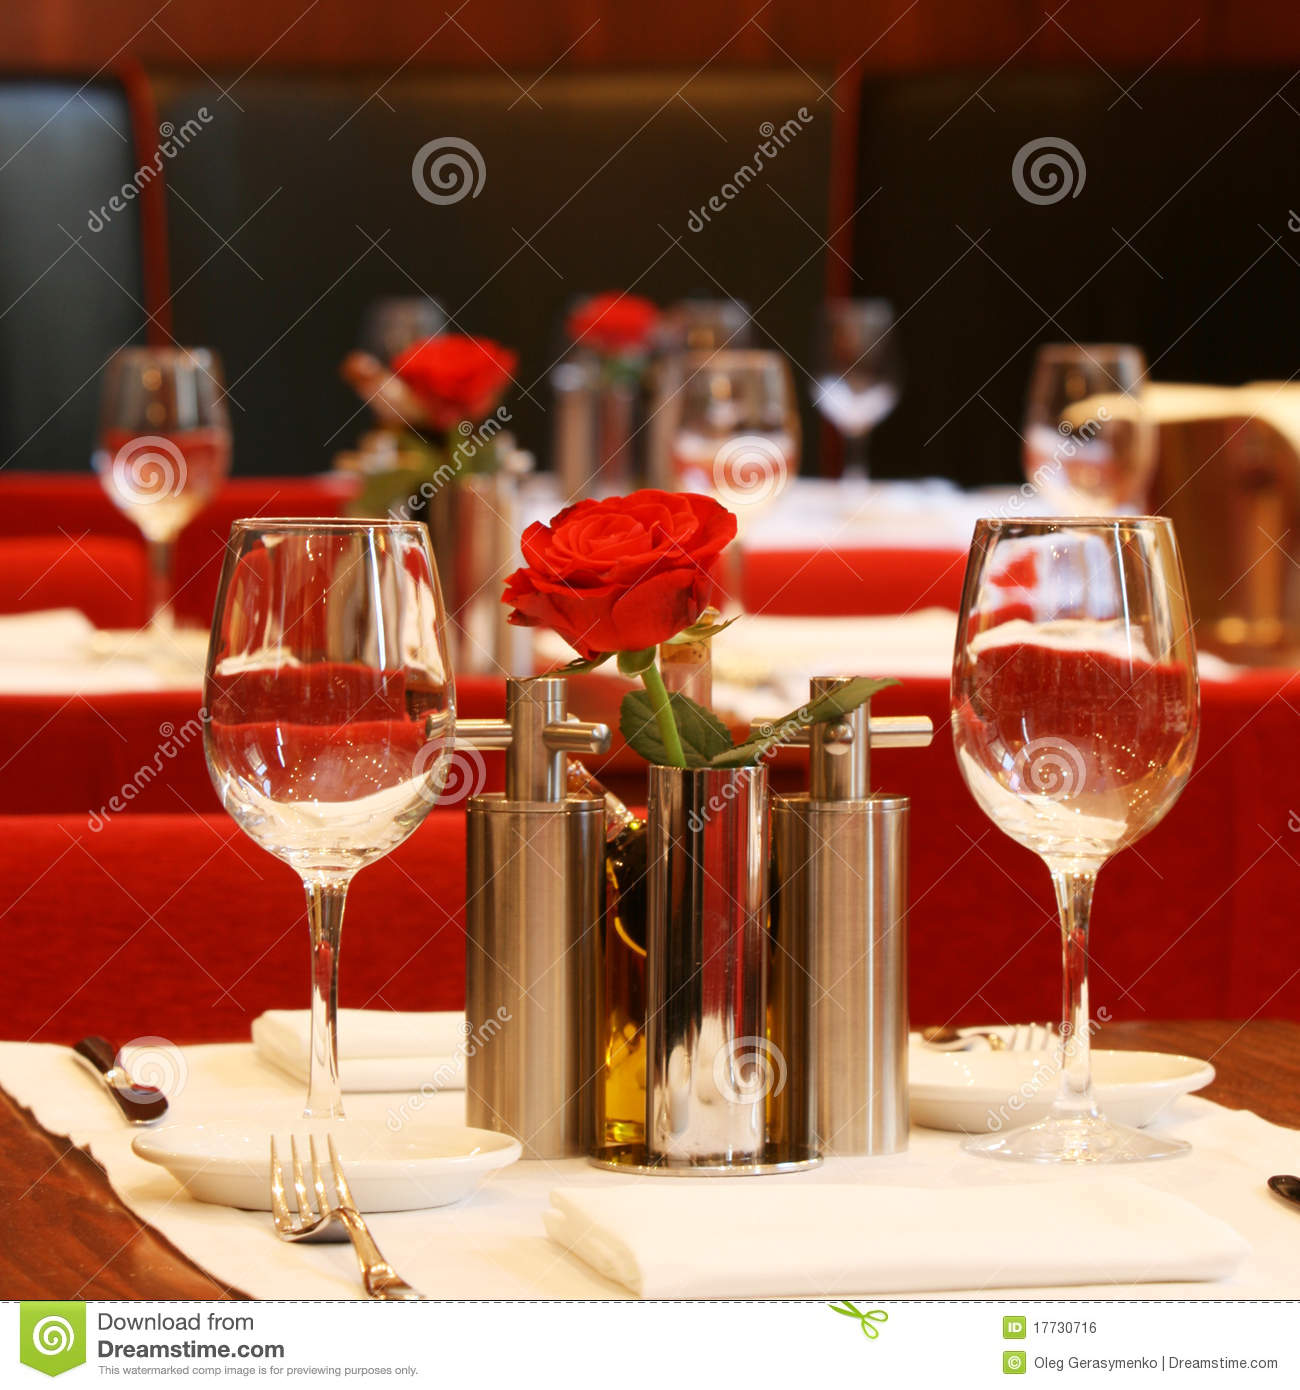 Restaurant table setting & Restaurant table setting stock photo. Image of catering - 17730716